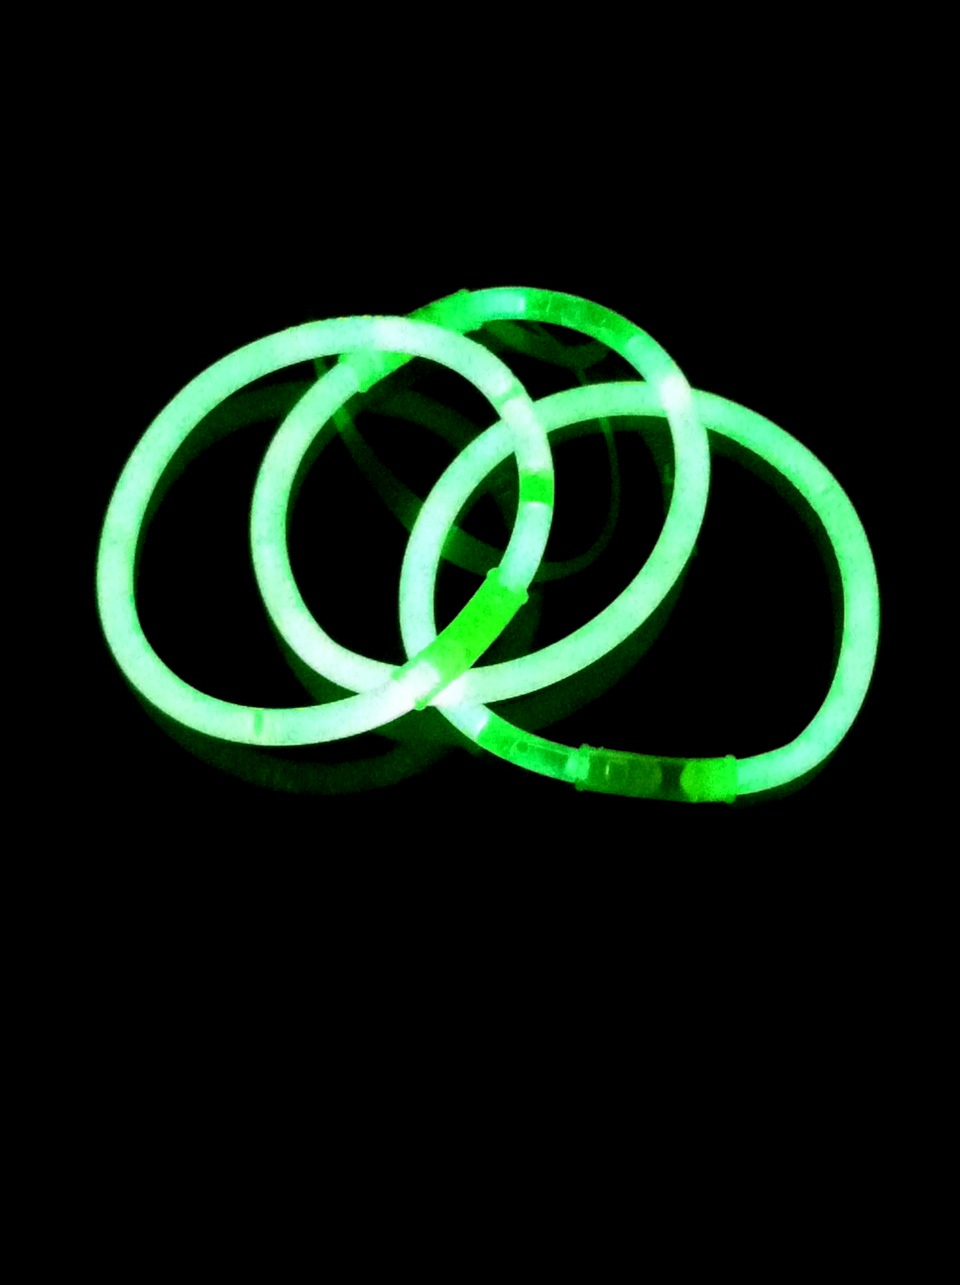 It's better when you keep glow sticks in storage for a long time because then they're brighter when you snap them and use them